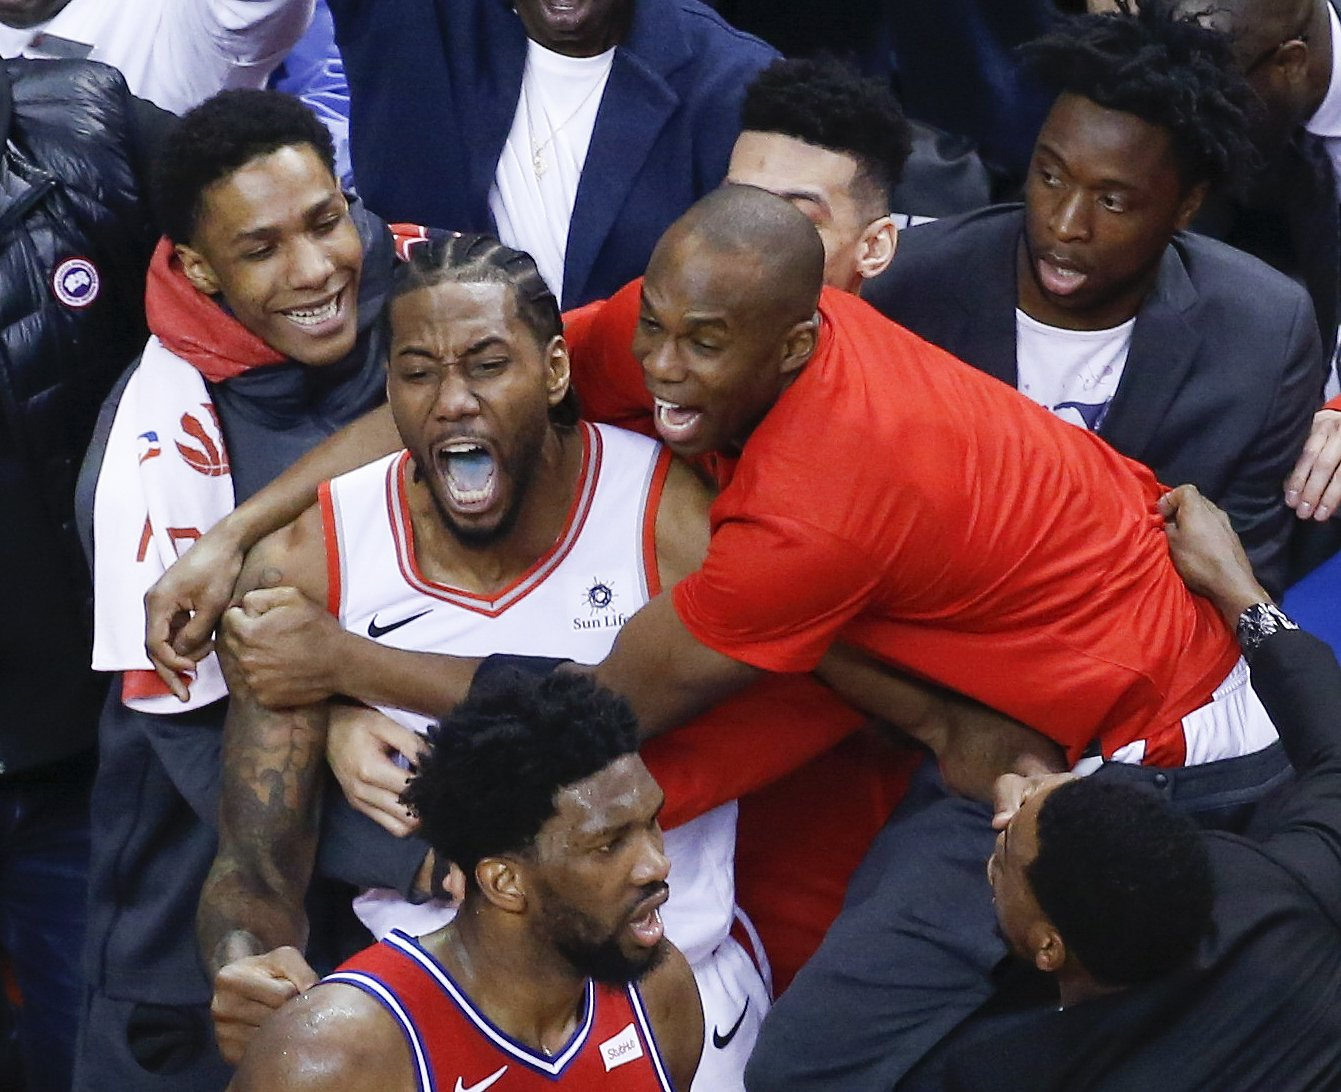 Emotions were running high on both sides. Kawhi actually roared after hitting the game winner. It's almost weird to see him in the moment erupt like that. He is killing it New Balances.